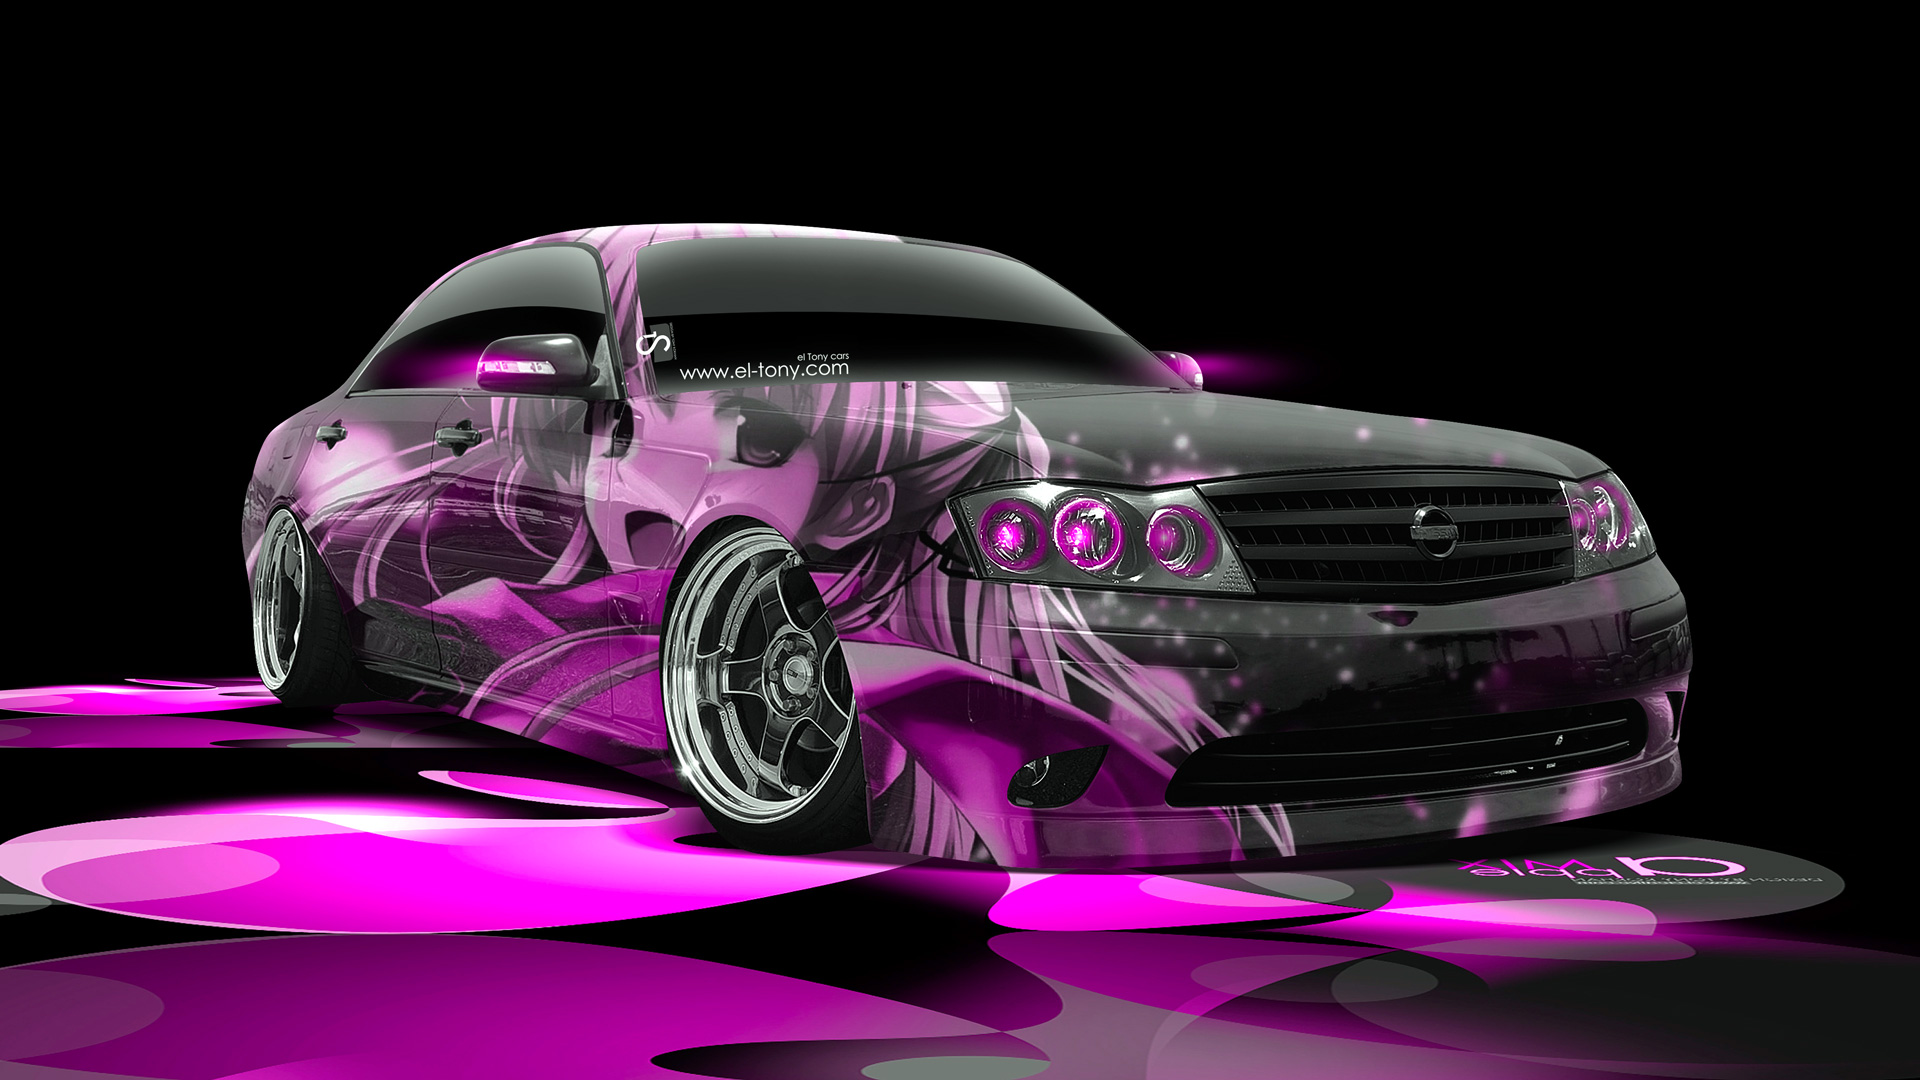 Exceptionnel Nissan Cedric JDM Anime Girl Aerography Car 2014  ...